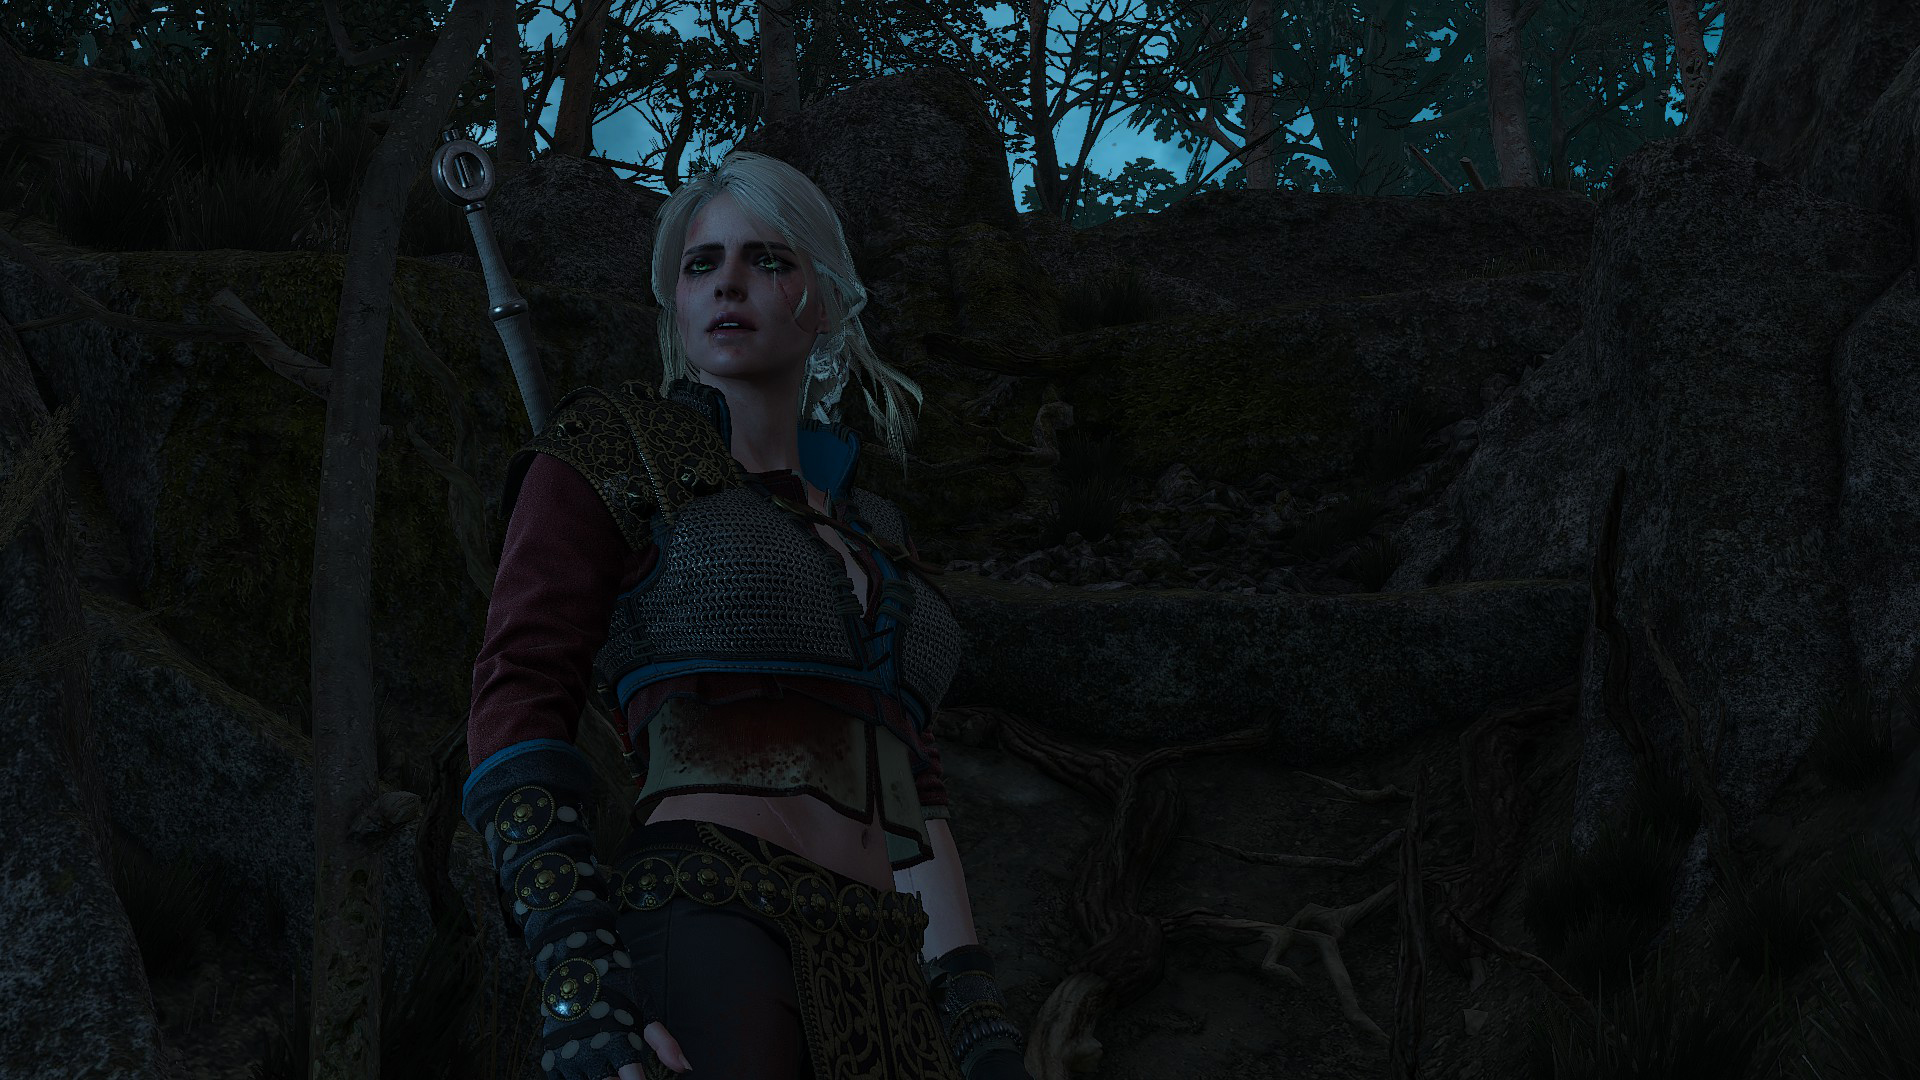 Ciri's Story: The King of the Wolves